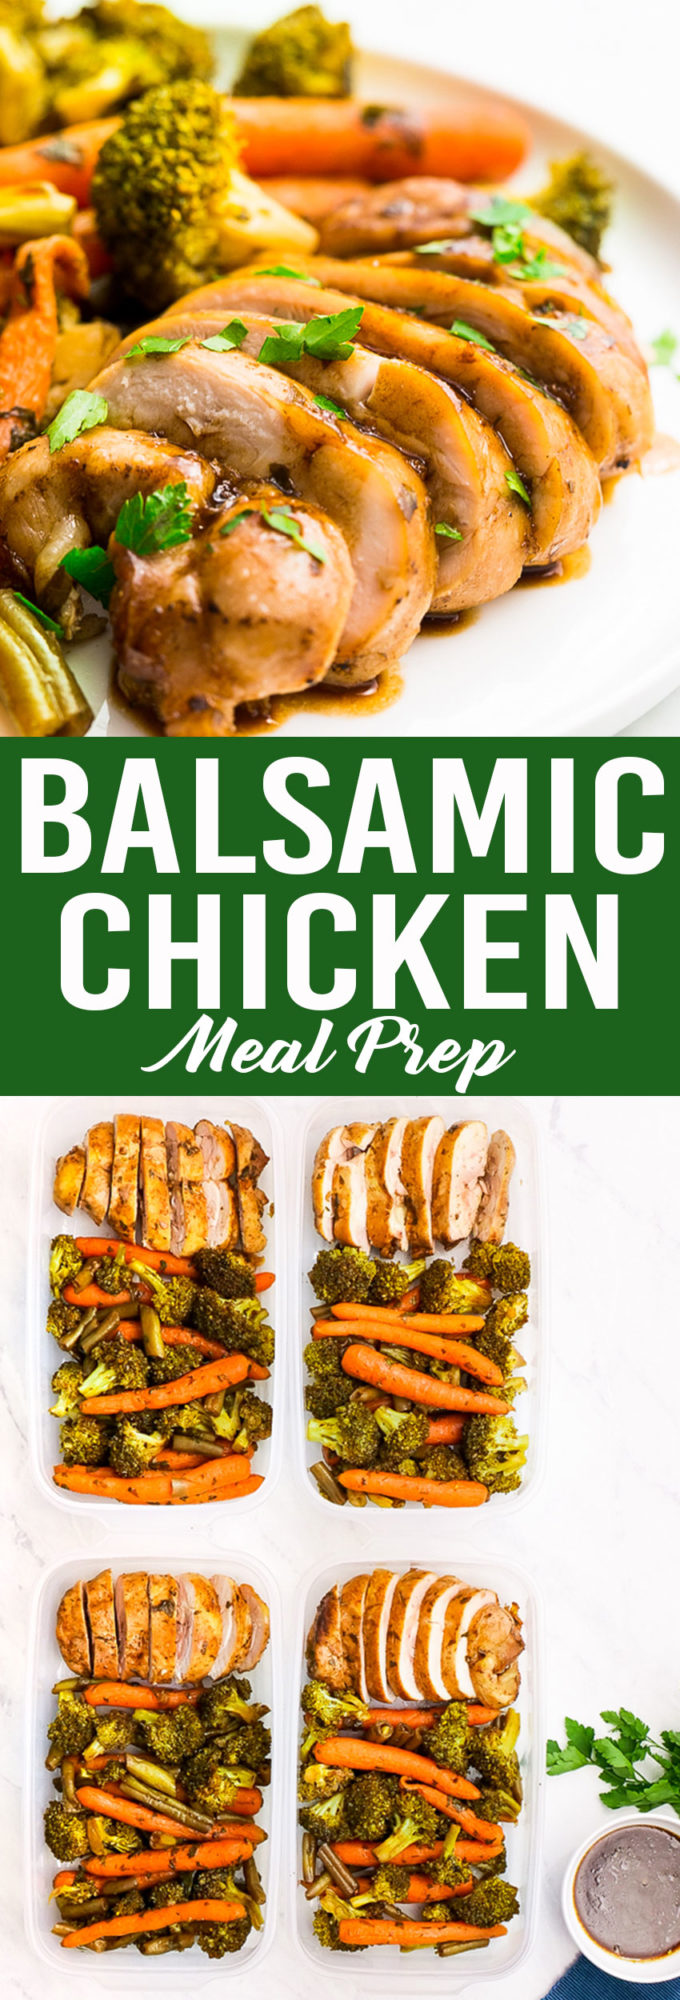 Balsamic Chicken Meal Prep